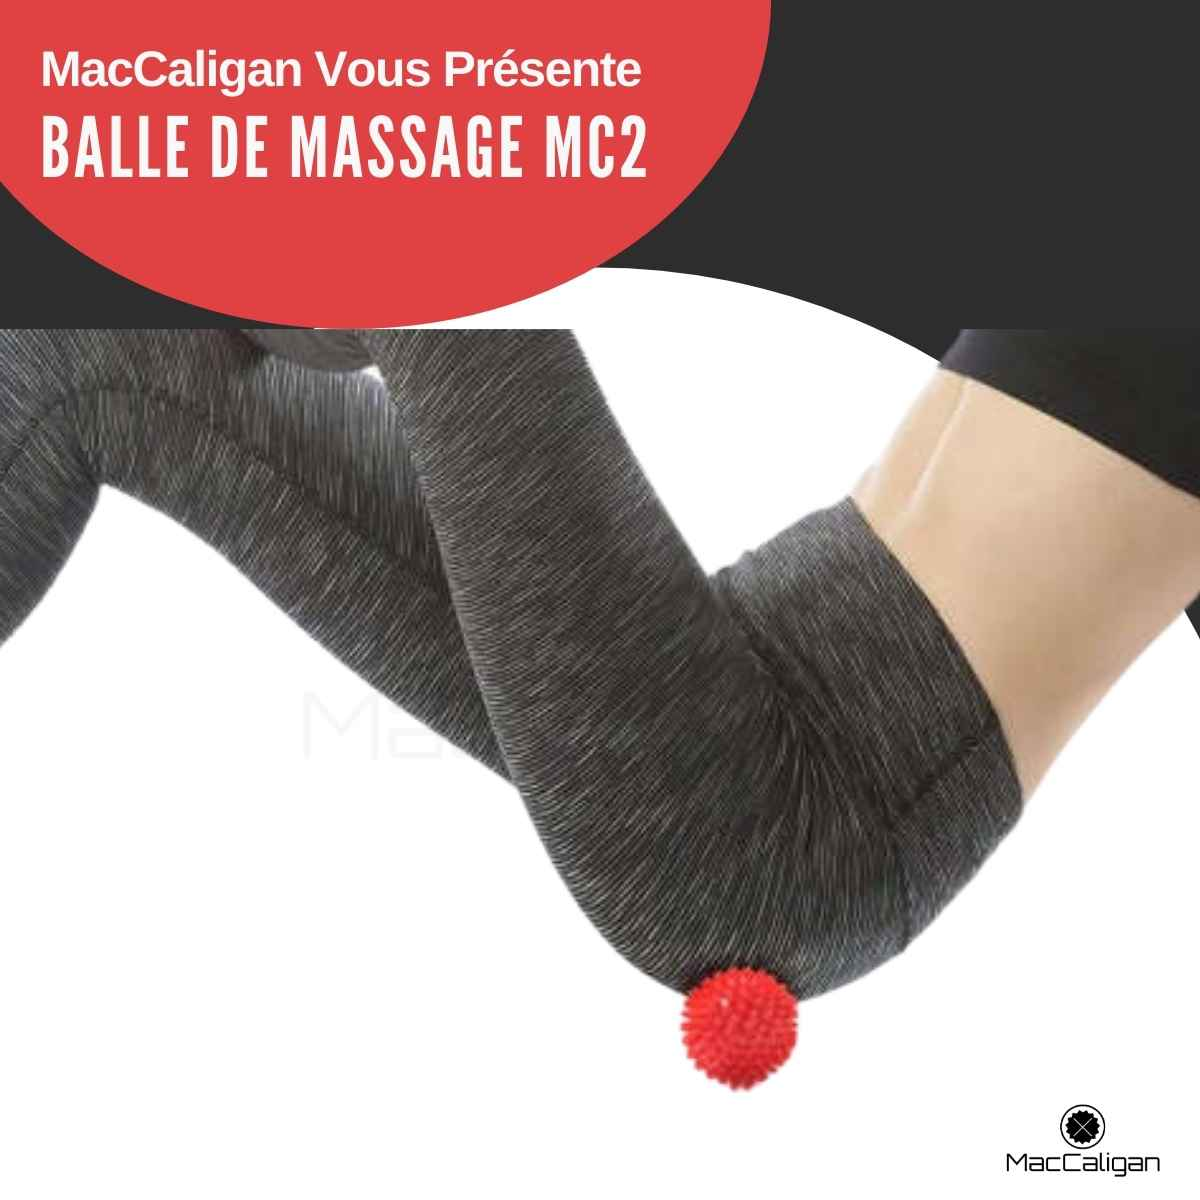 Balle De Massage MC2